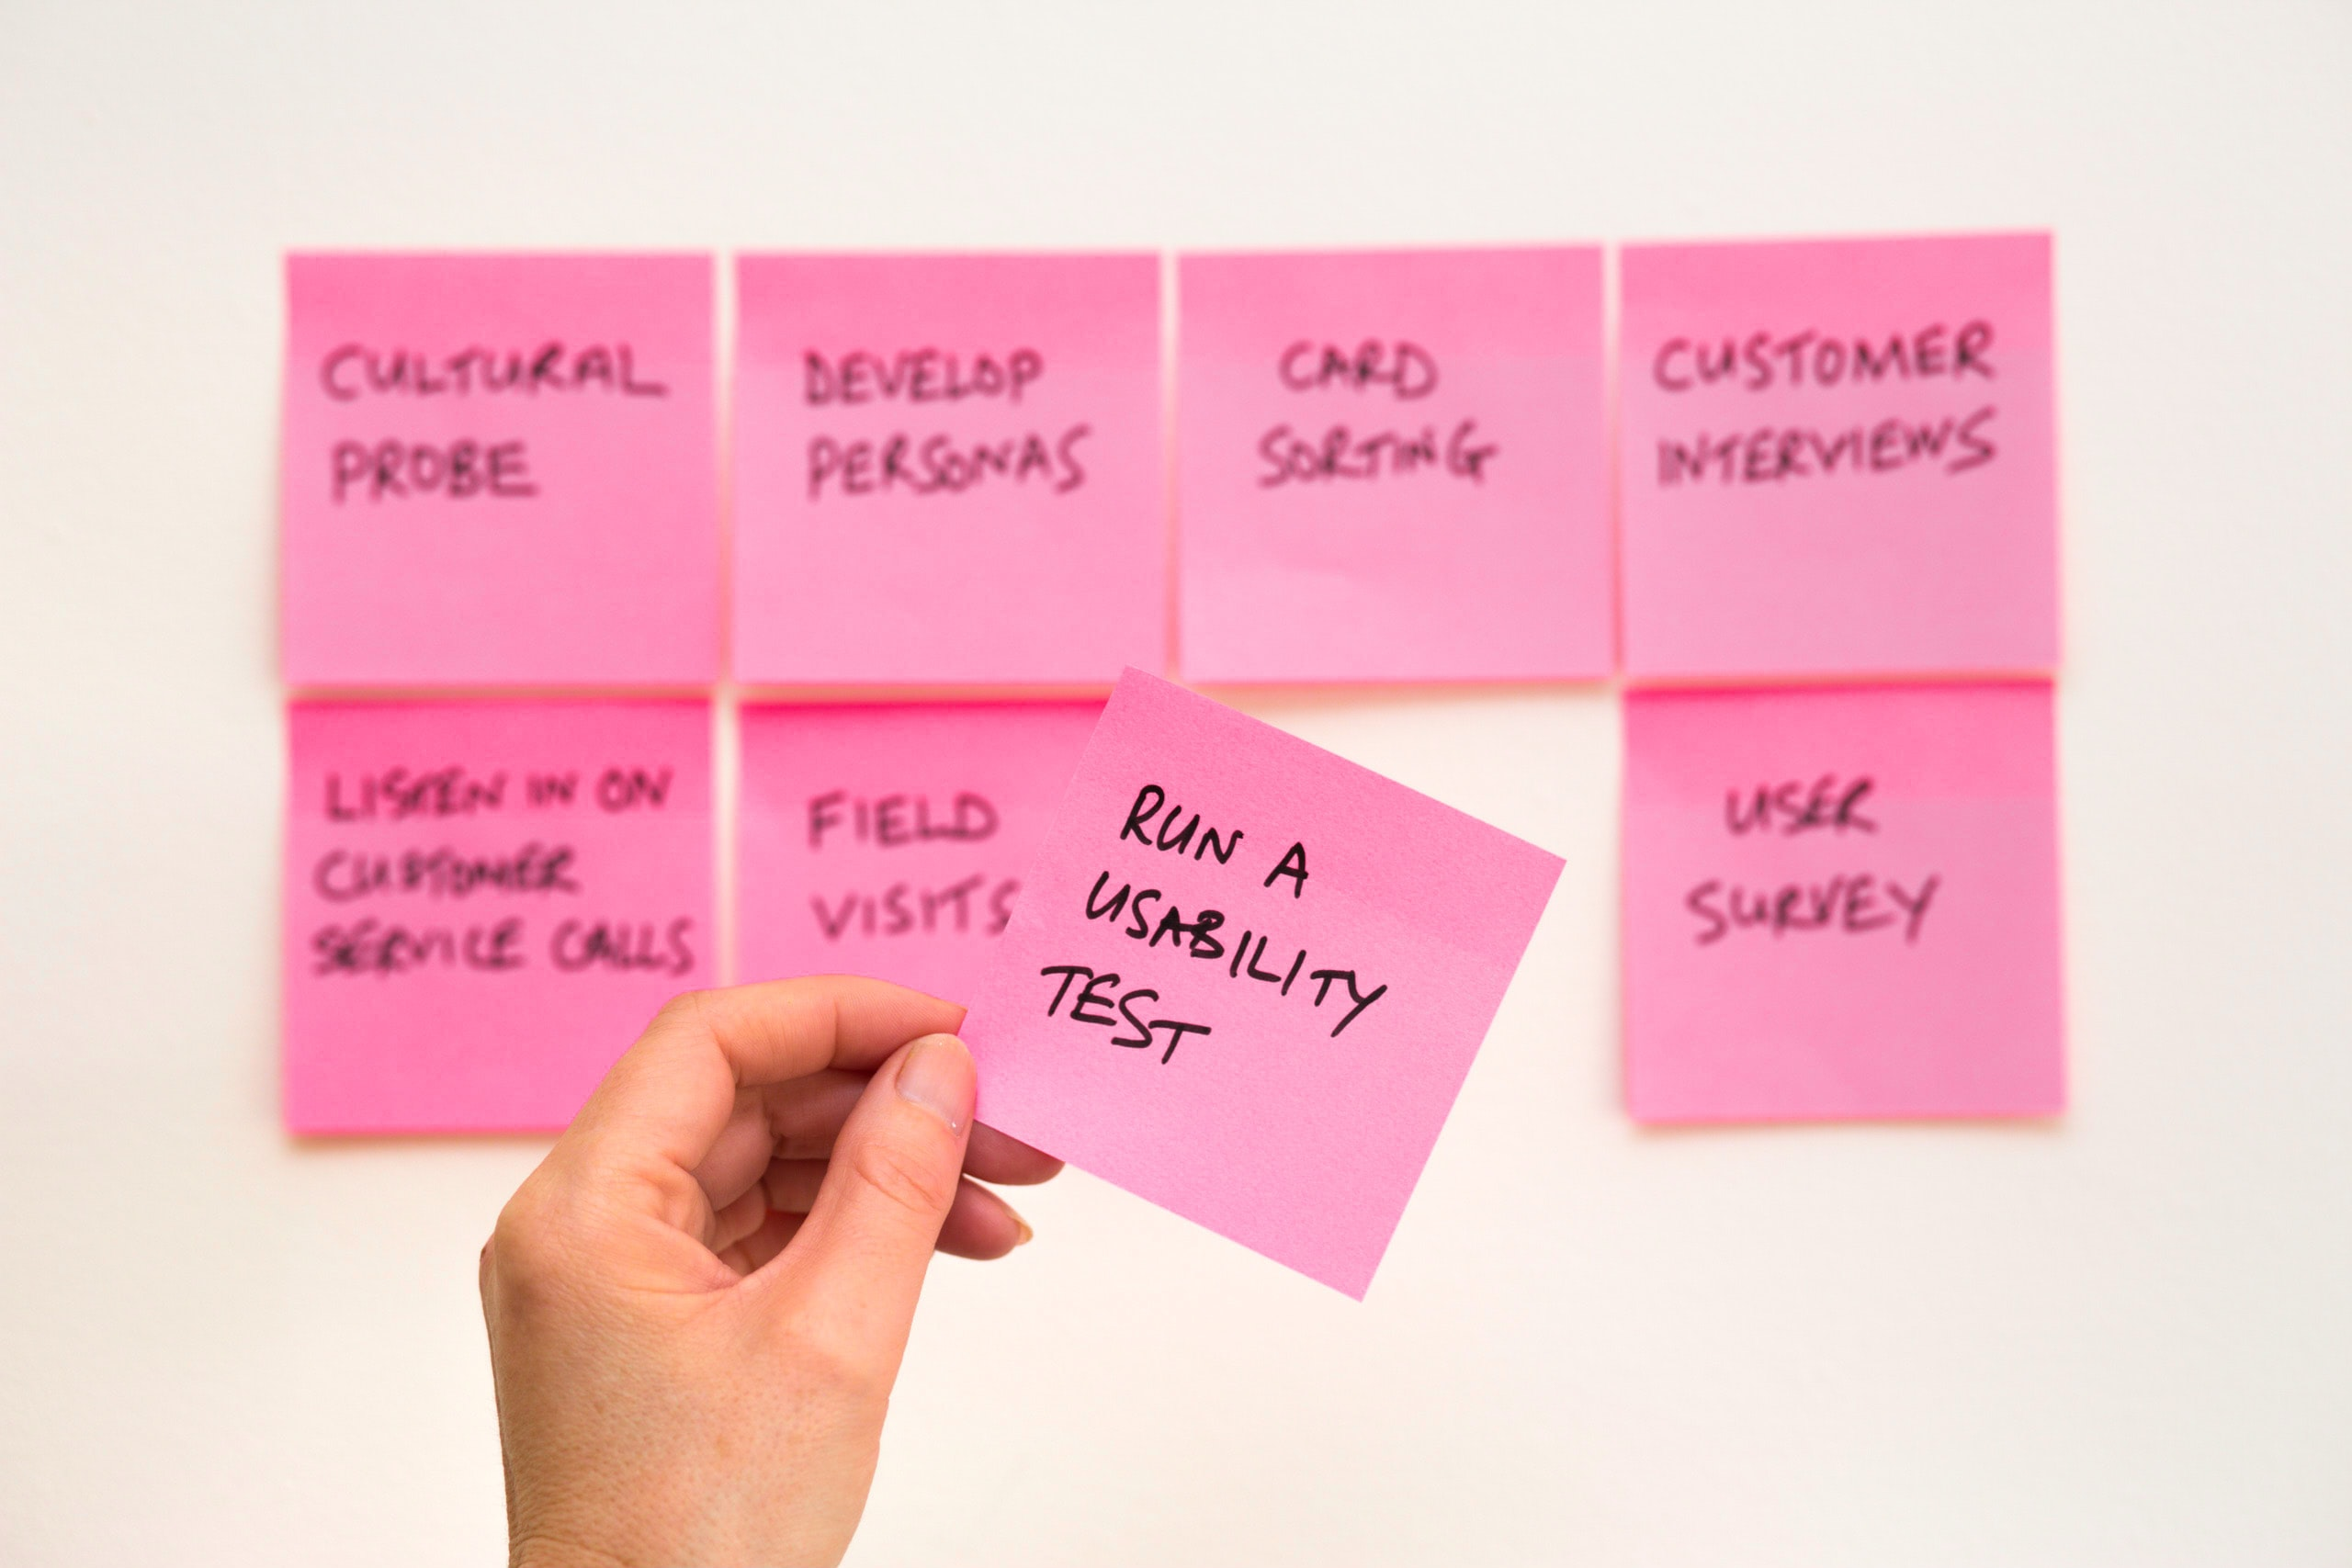 Post-it notes list actions to include as a UX writer developing a content strategy: cultural probe, develop personas, card sorting, customer interviews, listen in o customer service calls, field visits, run a usability test, and user survey